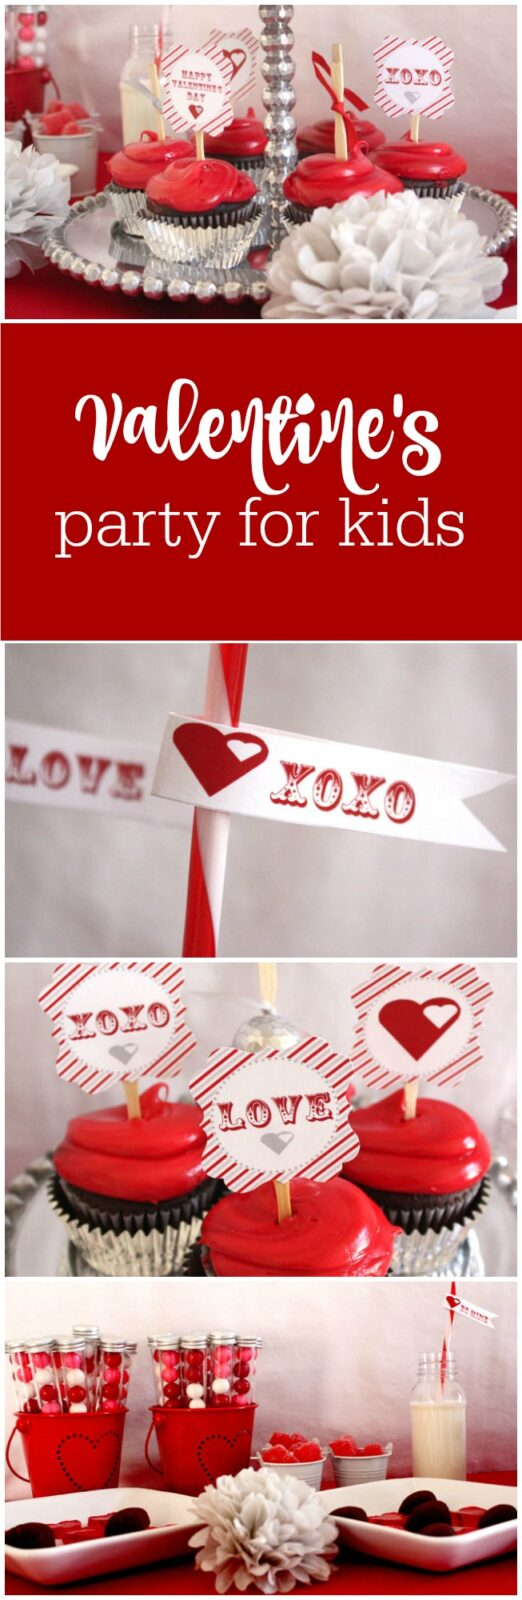 Valentine's Day party for kids by Bella Grey Designs featured on The Party Teacher